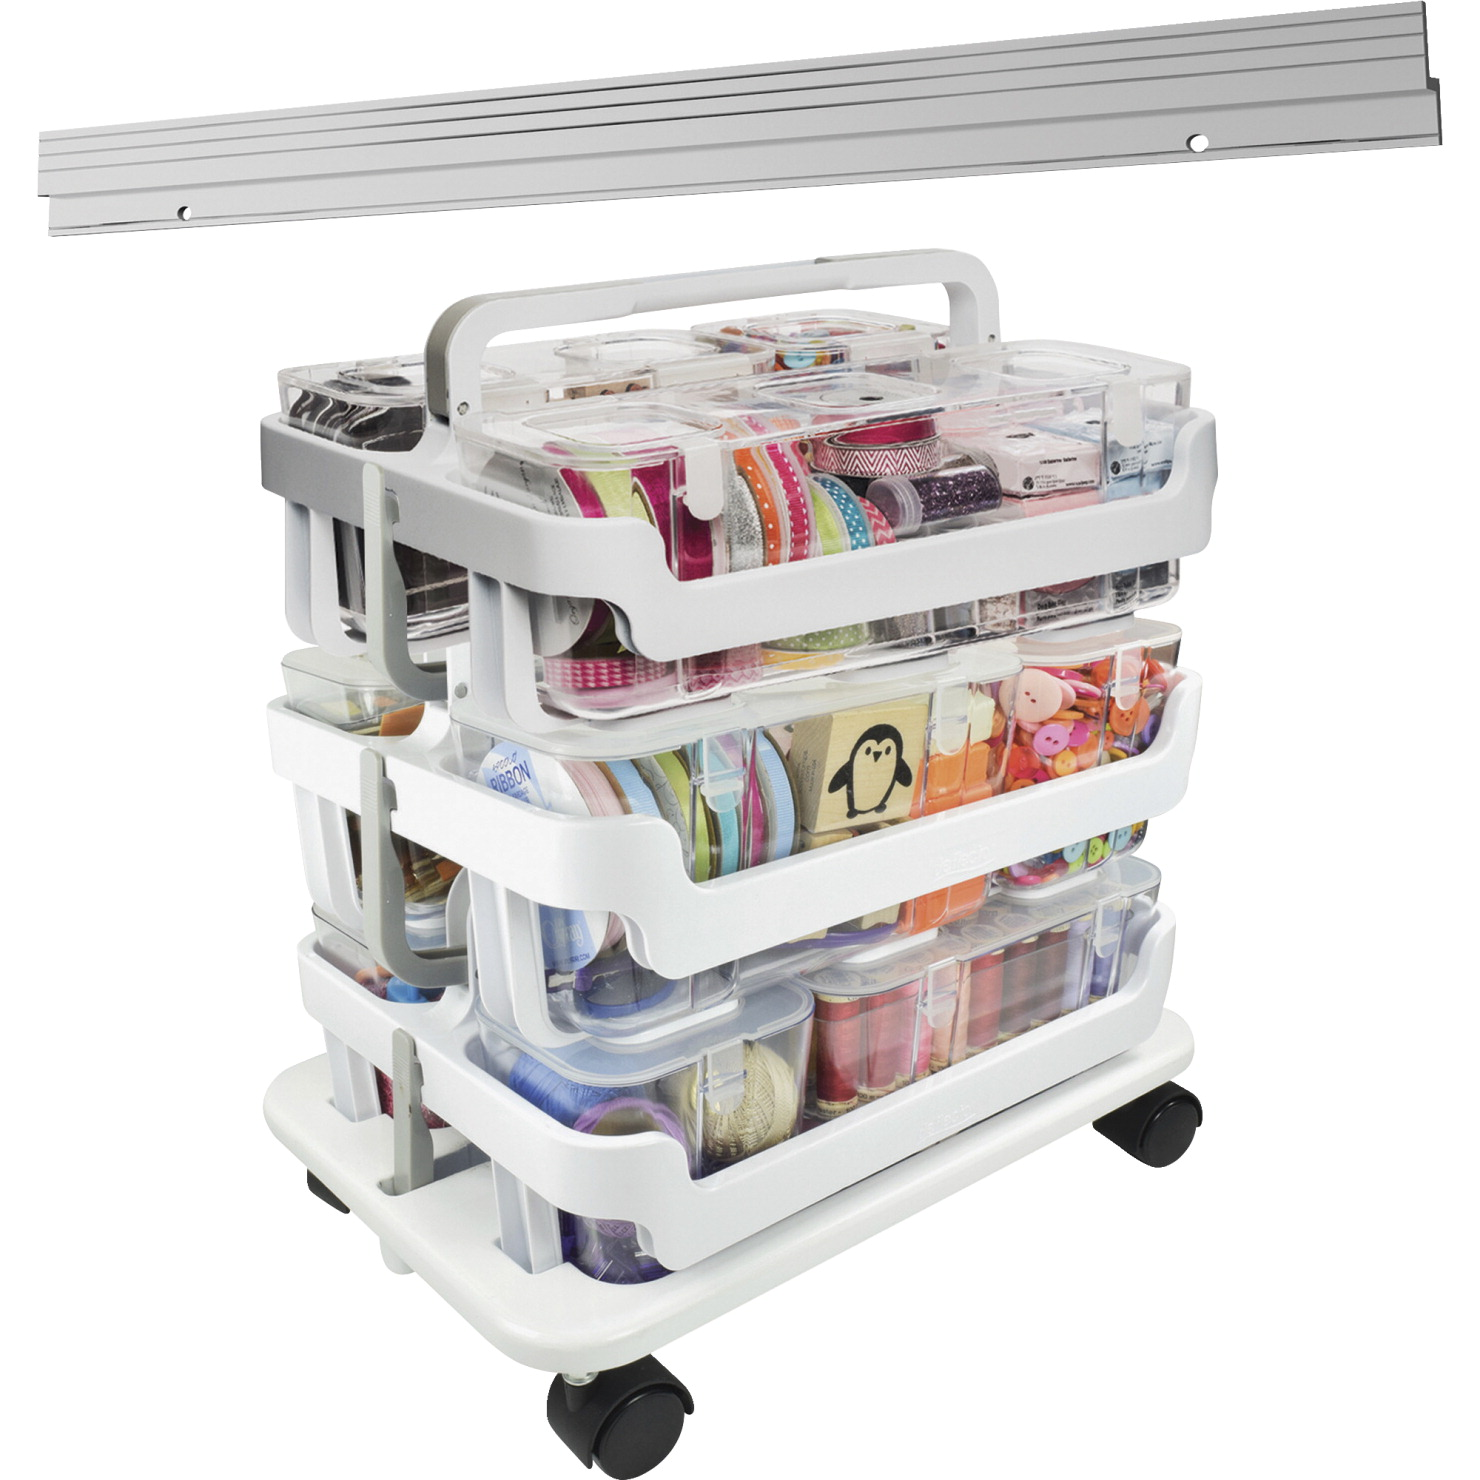 Deflect-o Caddy Organizer System, Stackable, 16 W x 11 L x 22-1/4 Inches H, AST